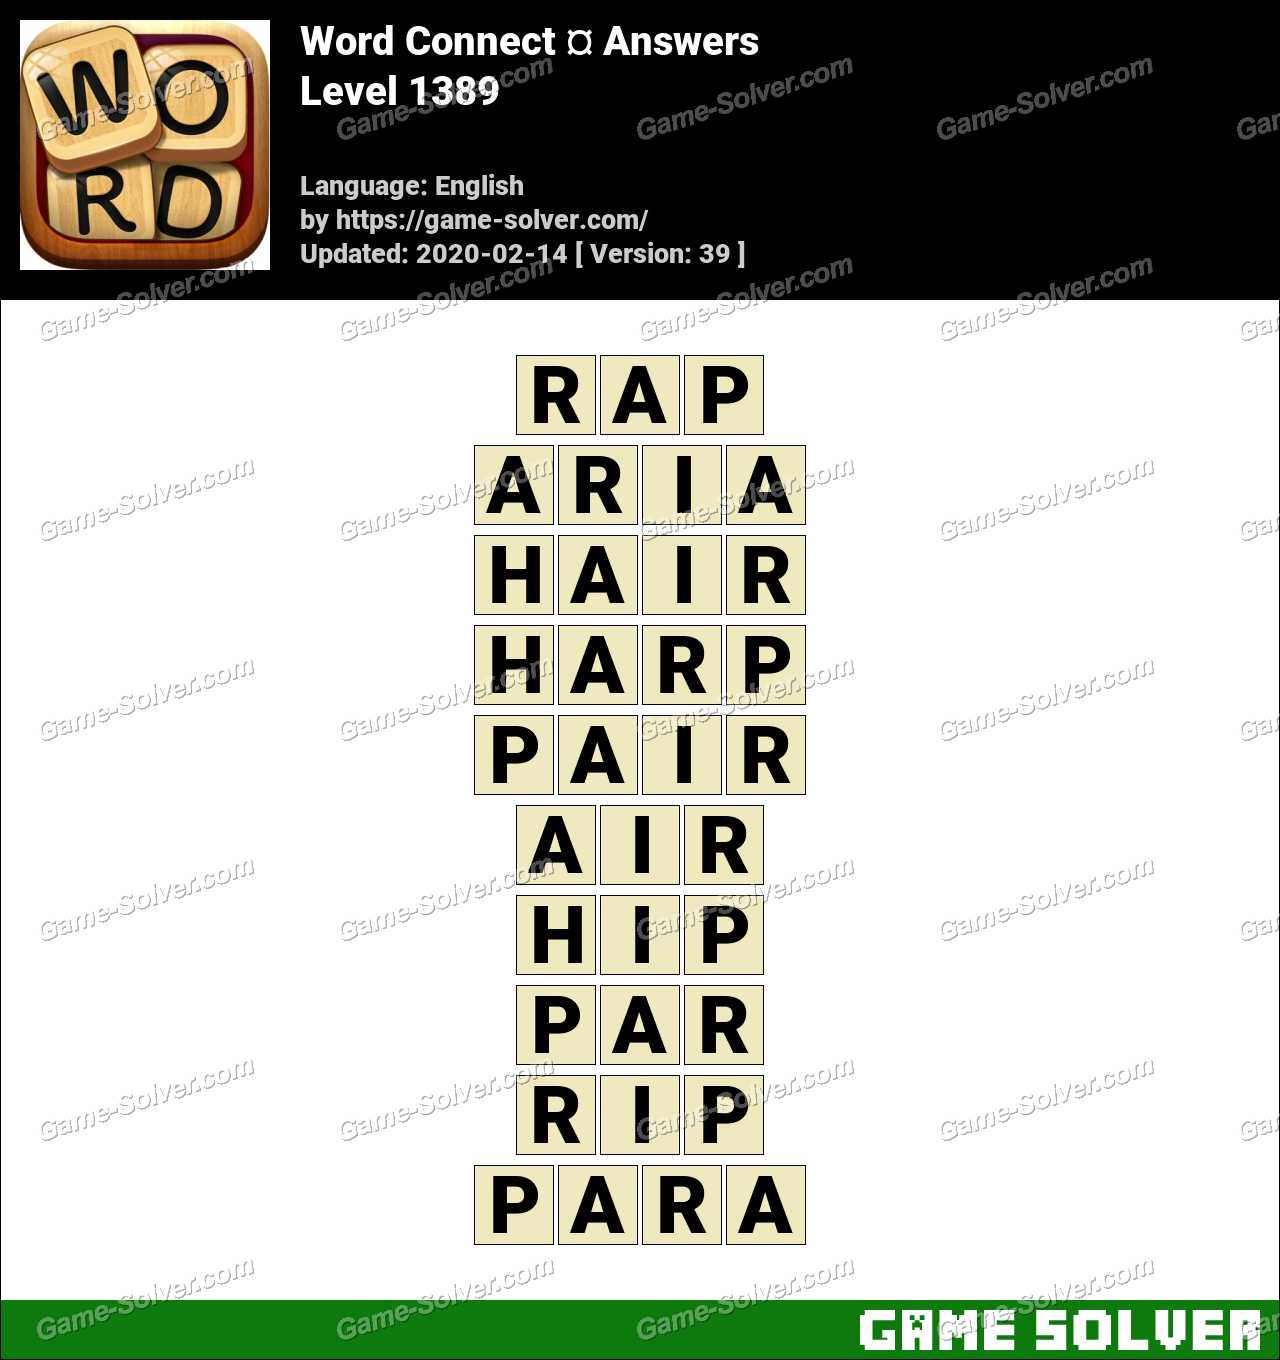 Word Connect Level 1389 Answers